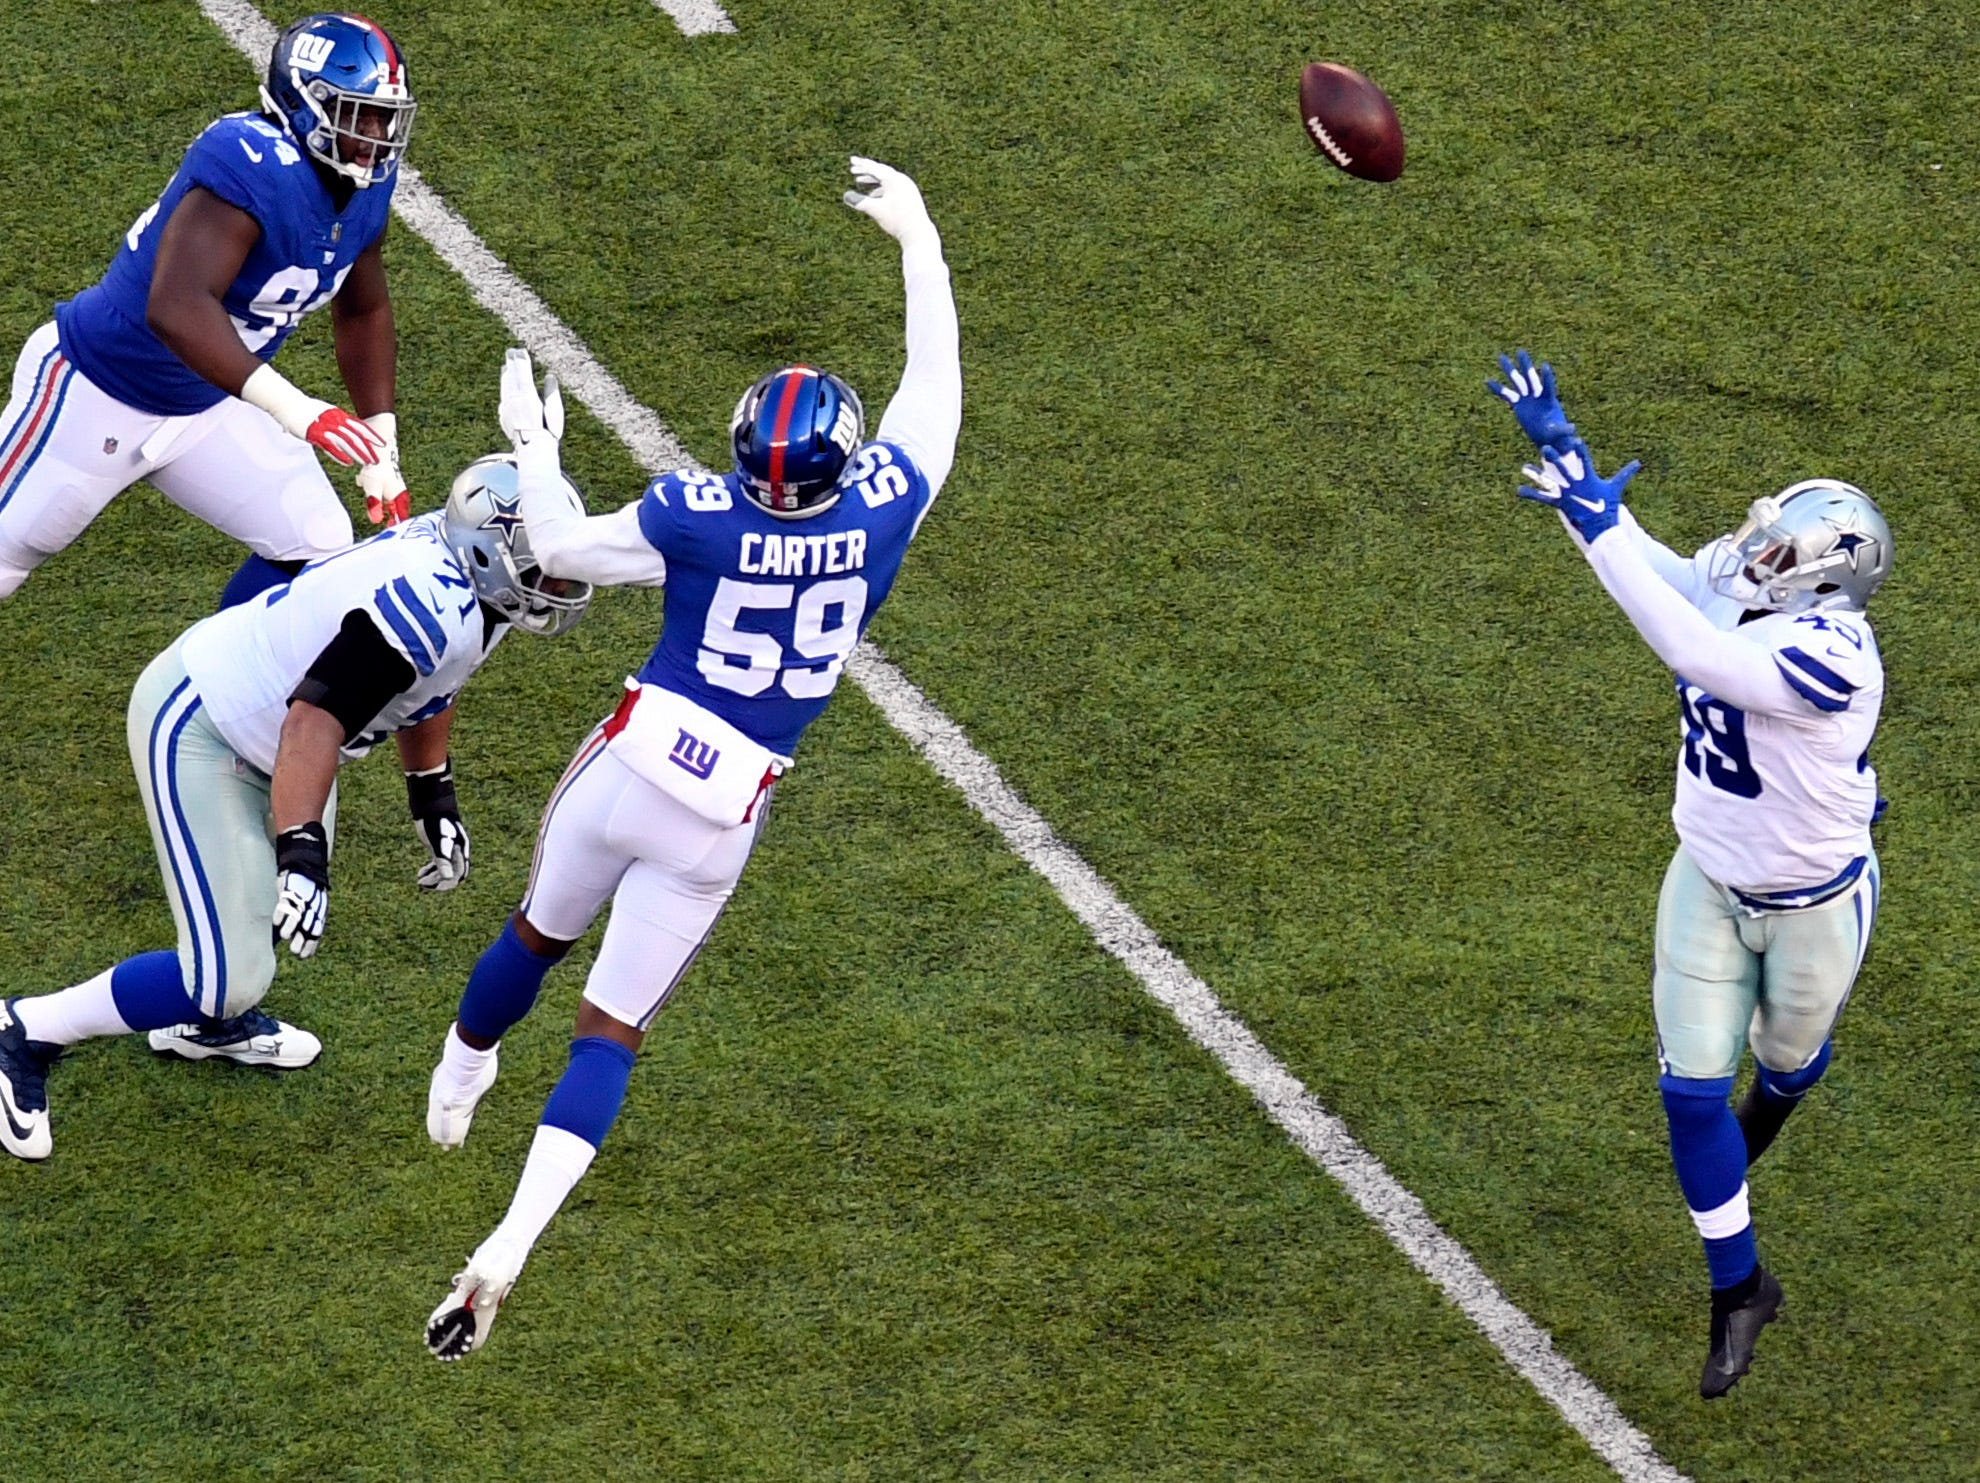 New York Giants linebacker Lorenzo Carter (59) tips a pss intended for Dallas Cowboys running back Jamize Olawale (49) in the first half. The New York Giants face the Dallas Cowboys in the last regular season game on Sunday, Dec. 30, 2018, in East Rutherford.